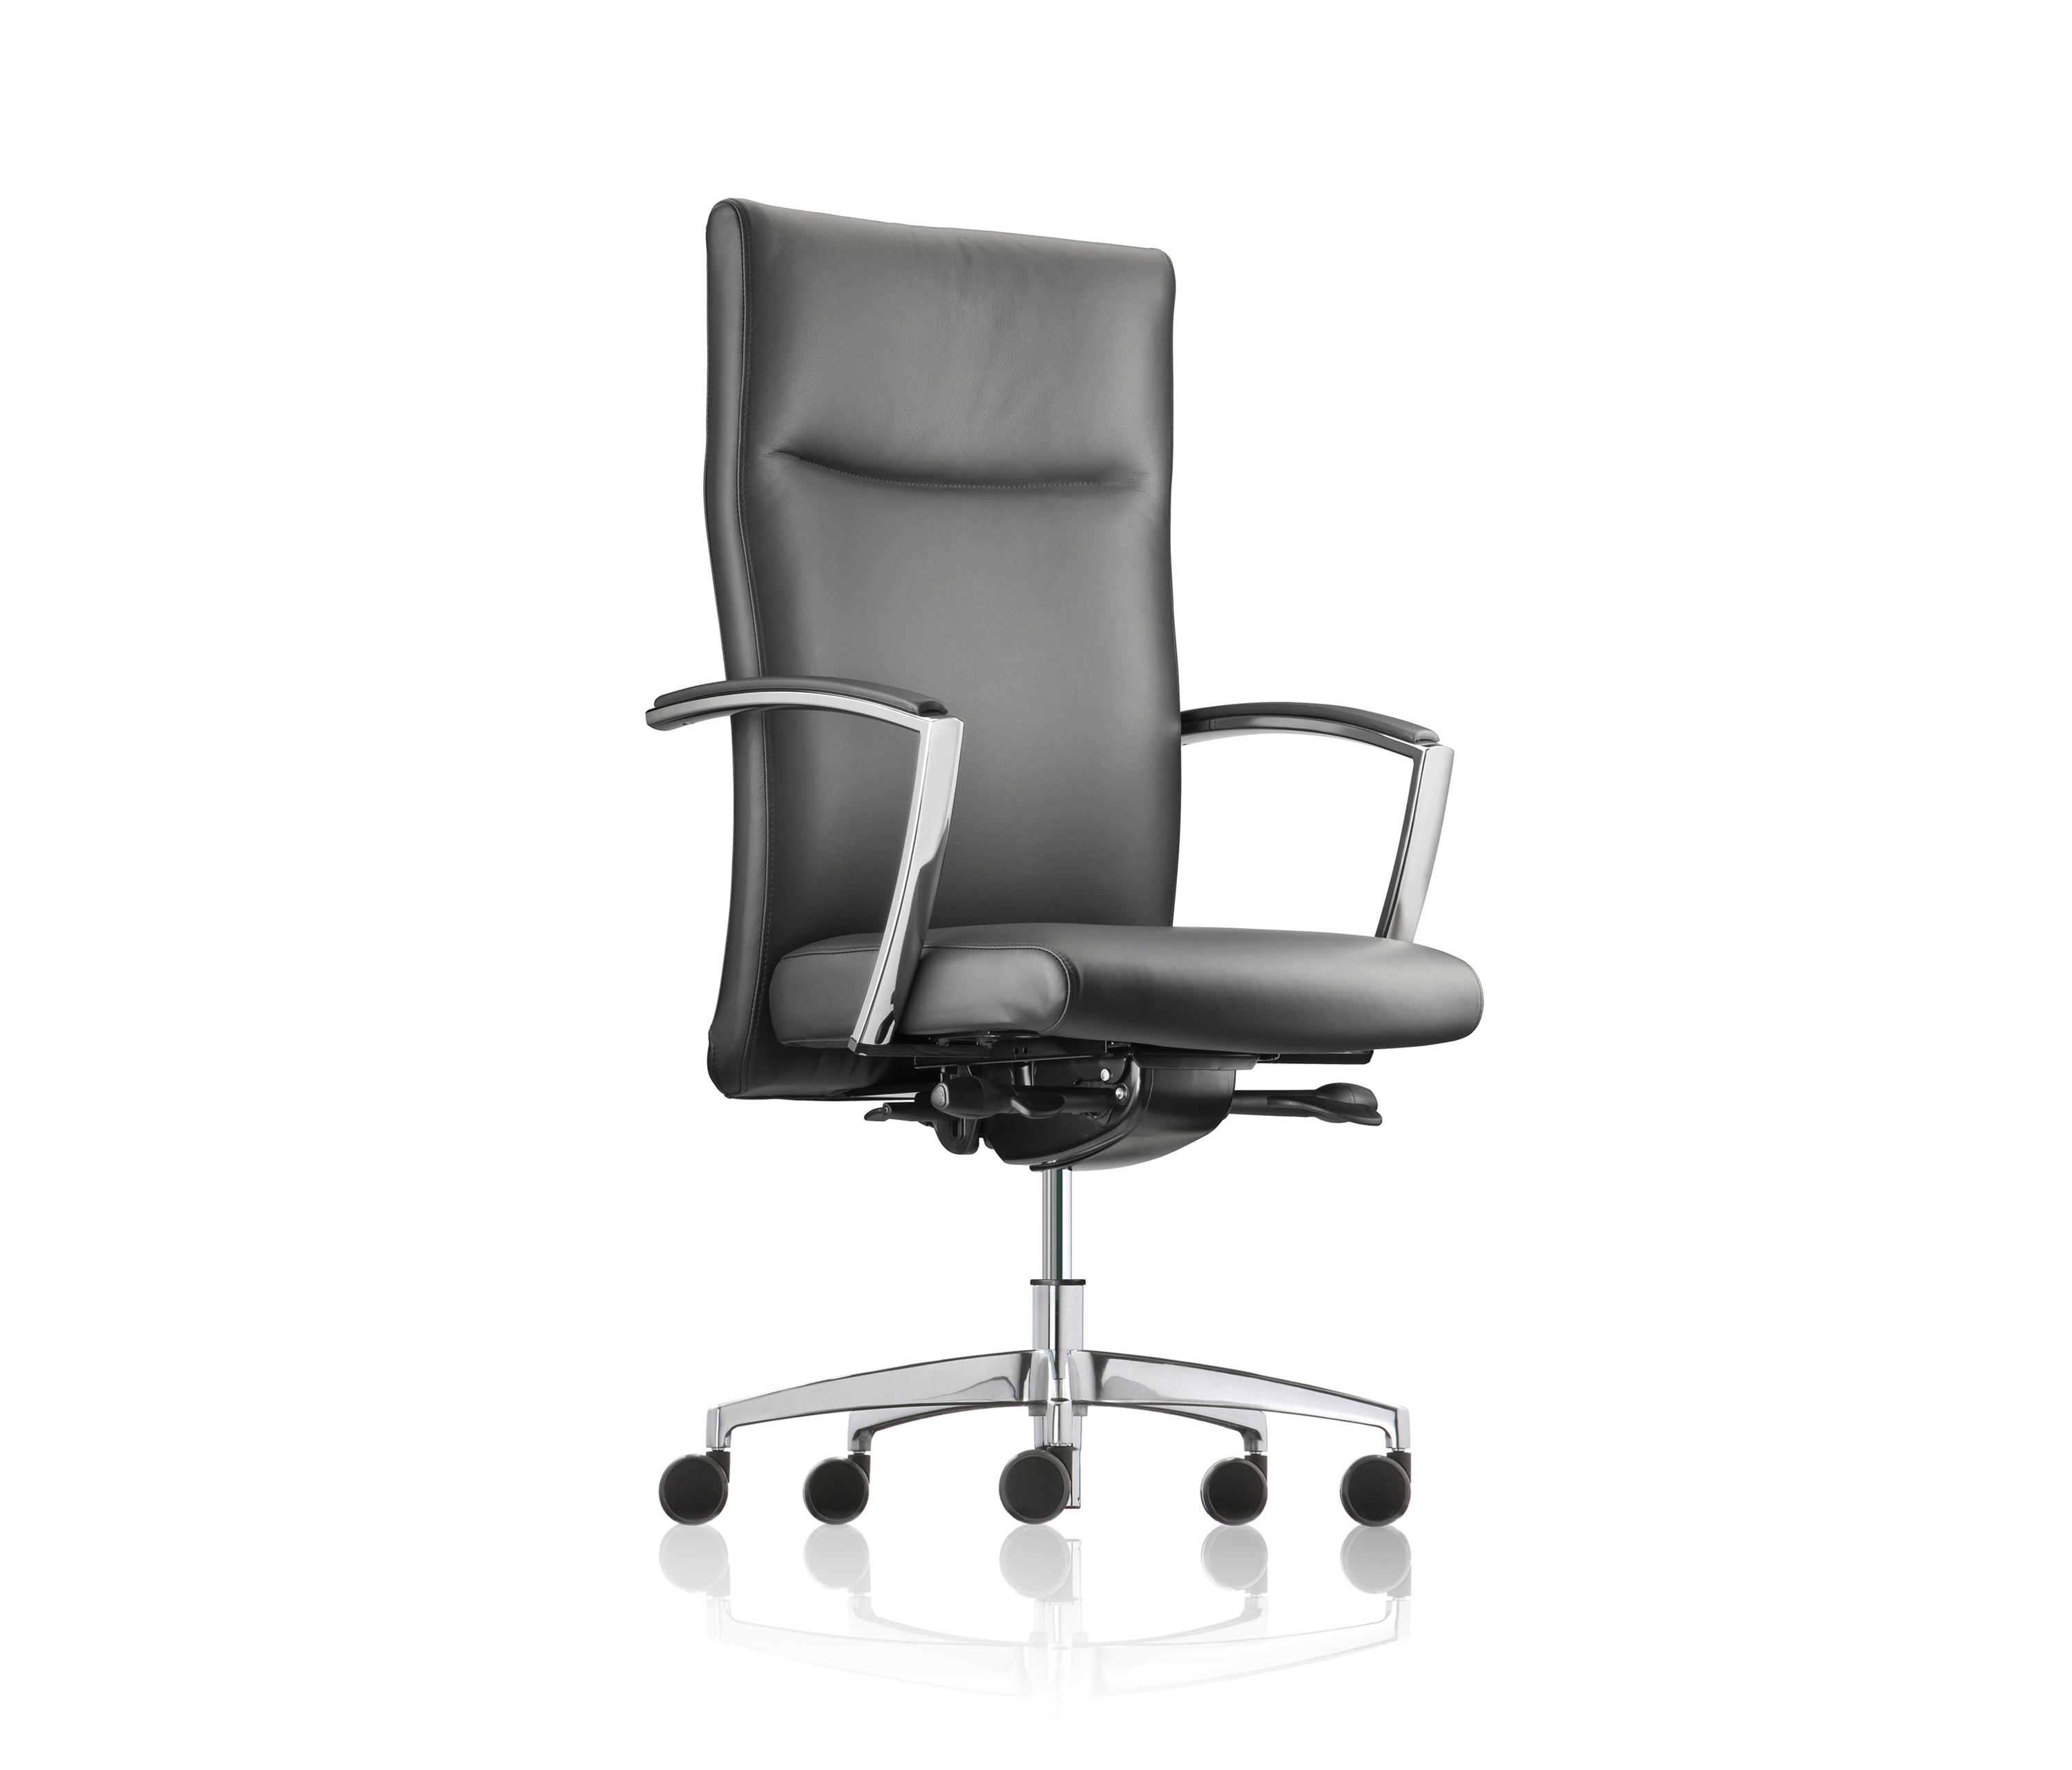 main swivel obj wid street chairs src spruce serena illum mspcswna fit lily res chair hei qlt images